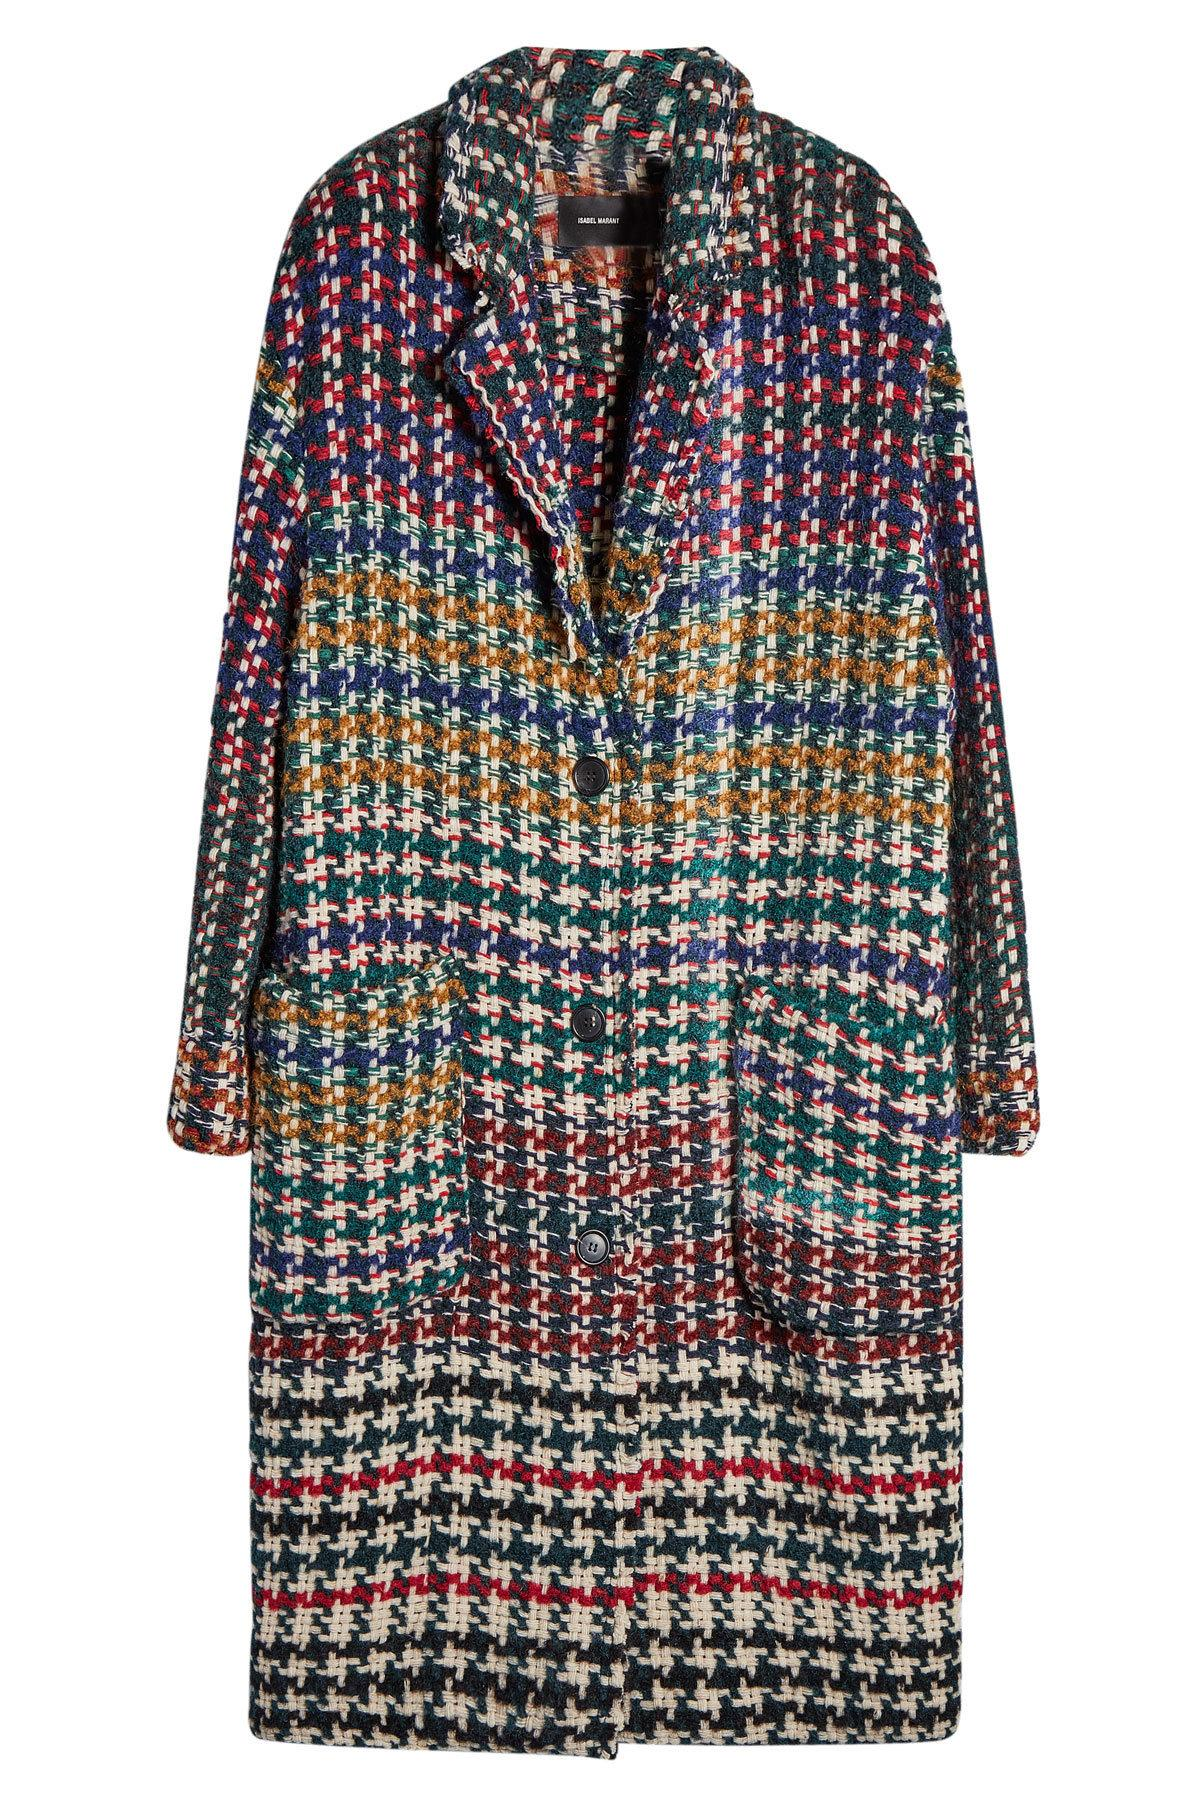 Isabel Marant Coat With Wool, Alpaca And Mohair In Multicolored